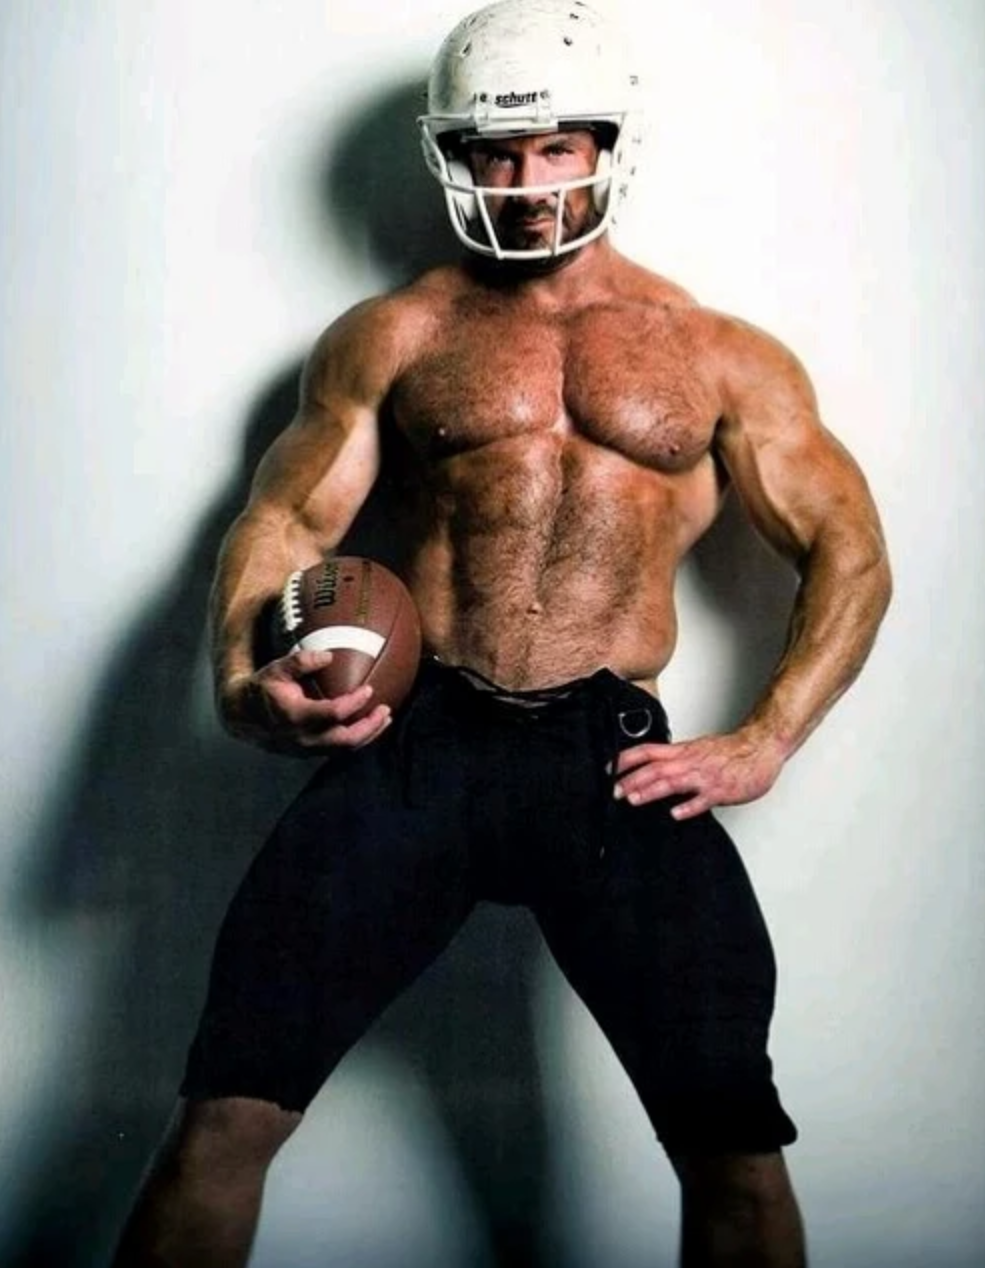 Hot sexy gay sports gear out